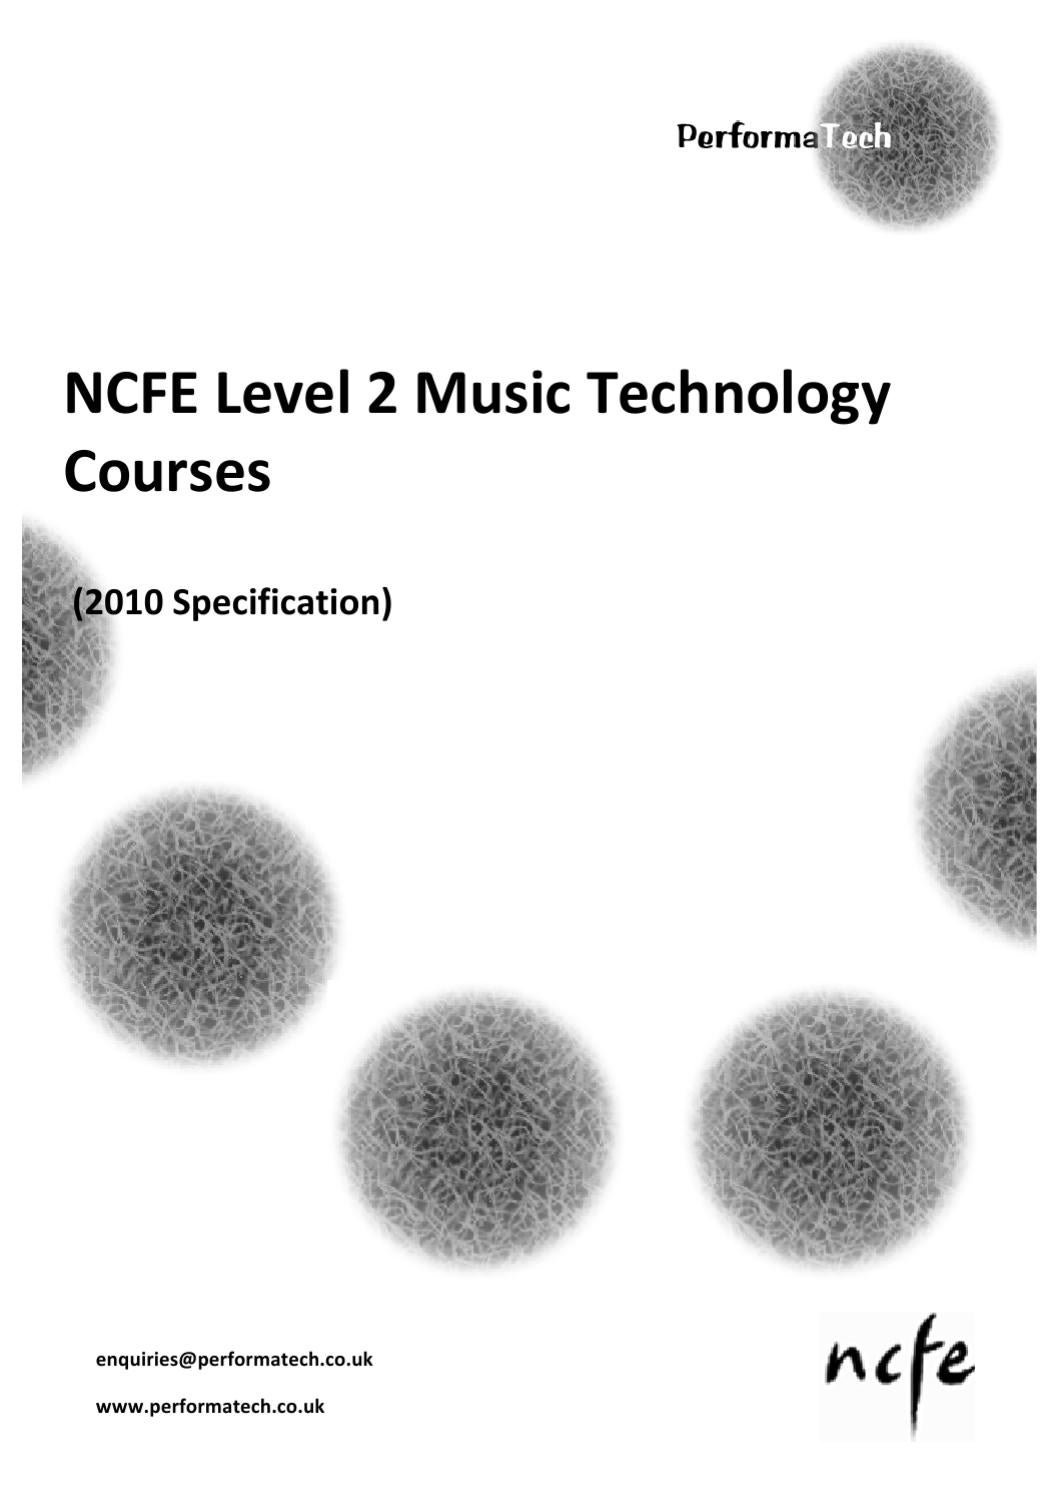 NCFE Level 2 Music Technology Overview by Christopher